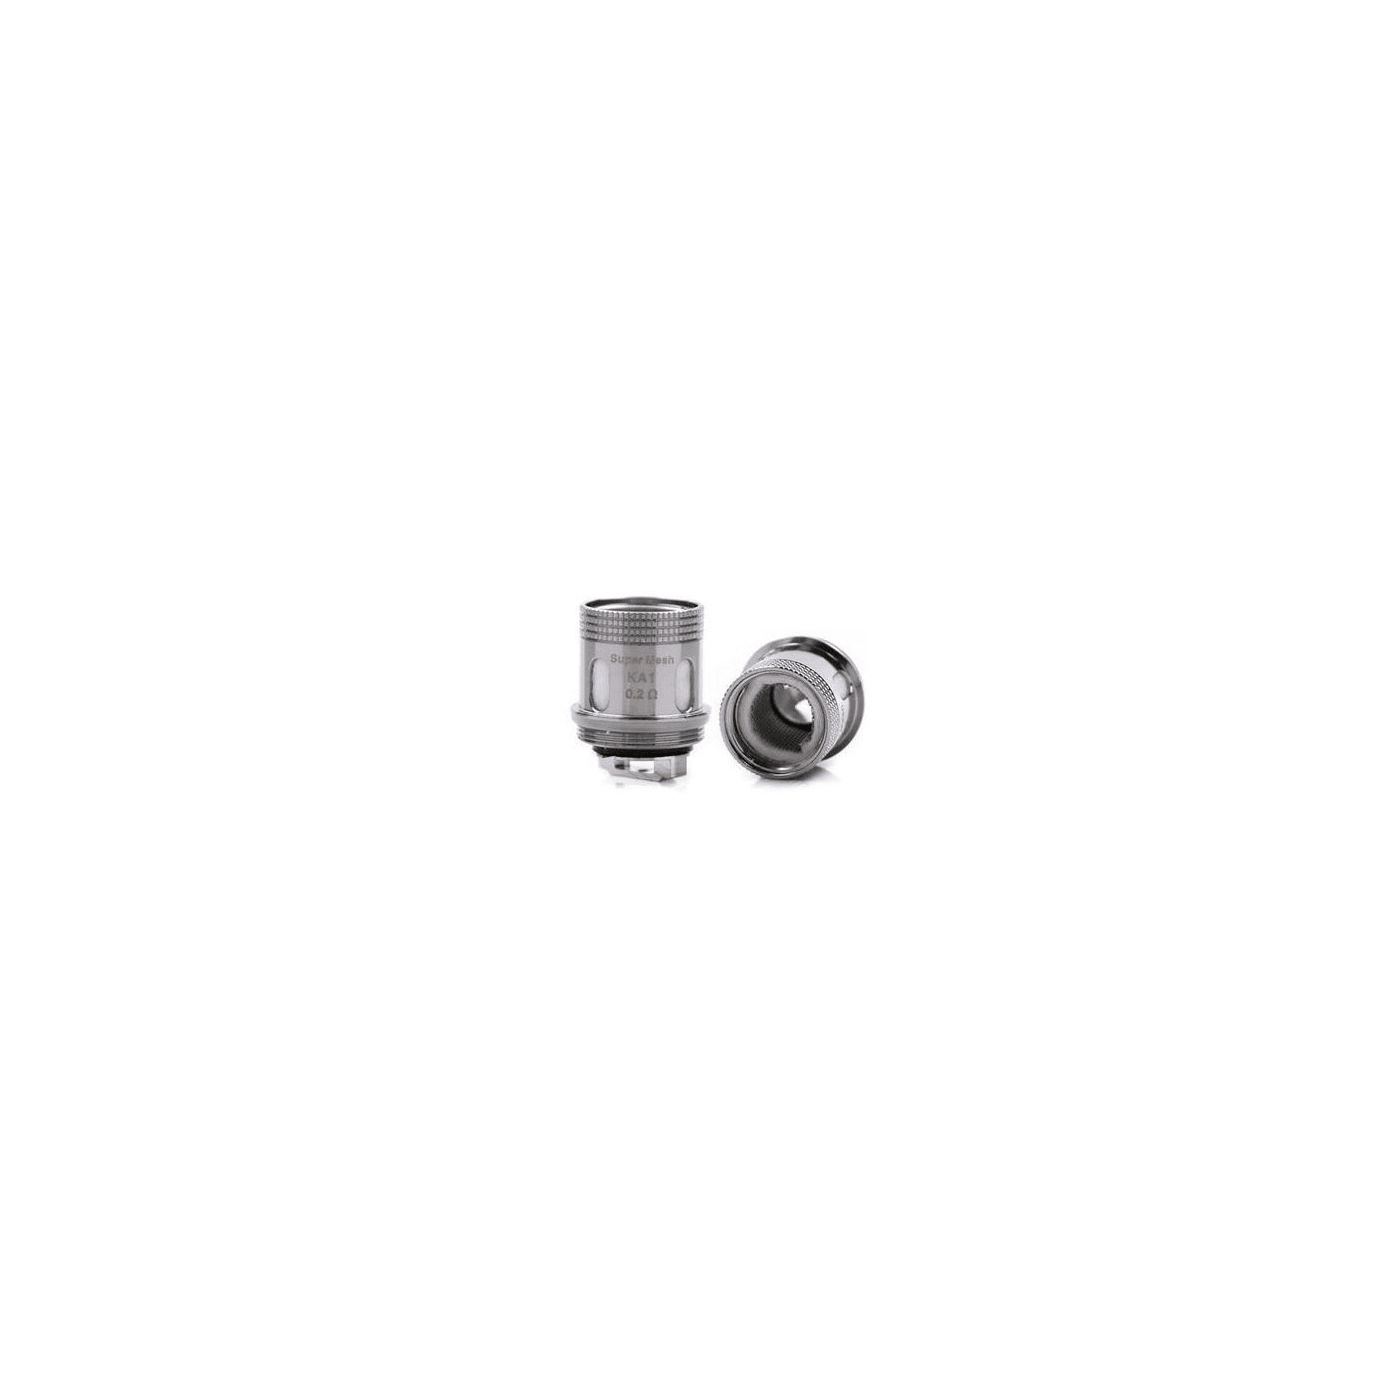 GeekVape Super Mesh X1 Replacement Coil - 5 Pack